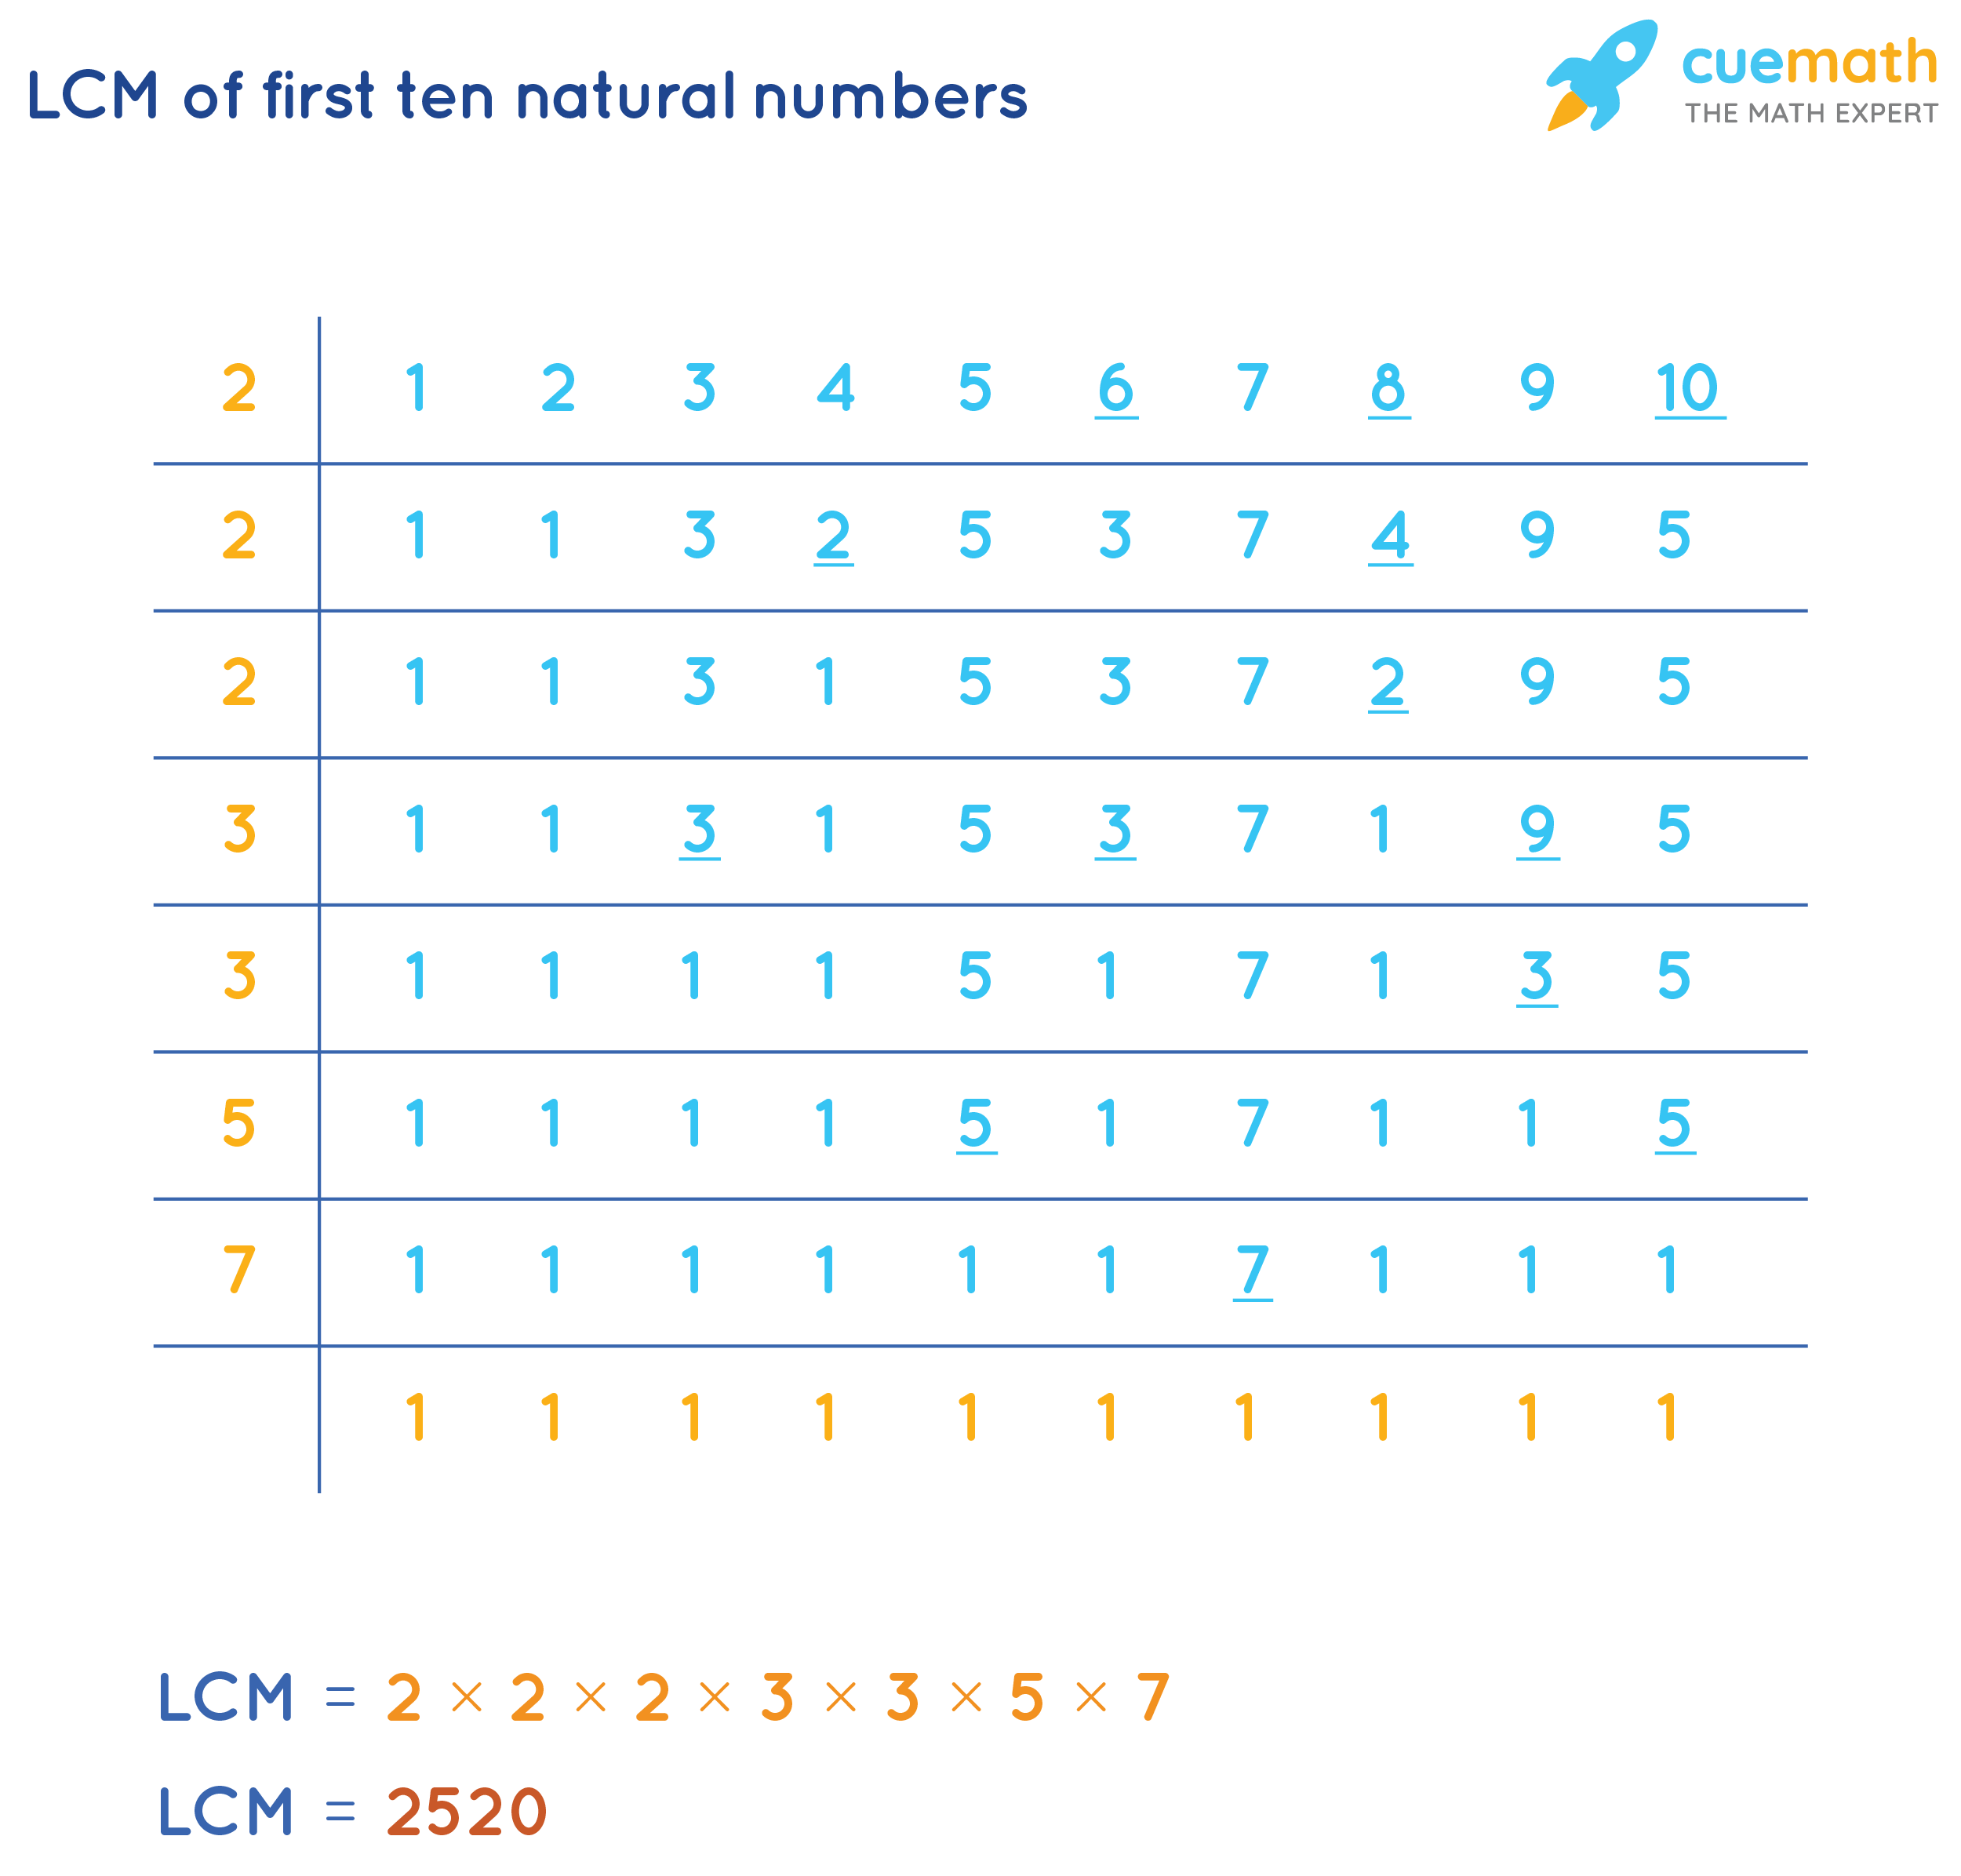 LCM of first ten natural numbers